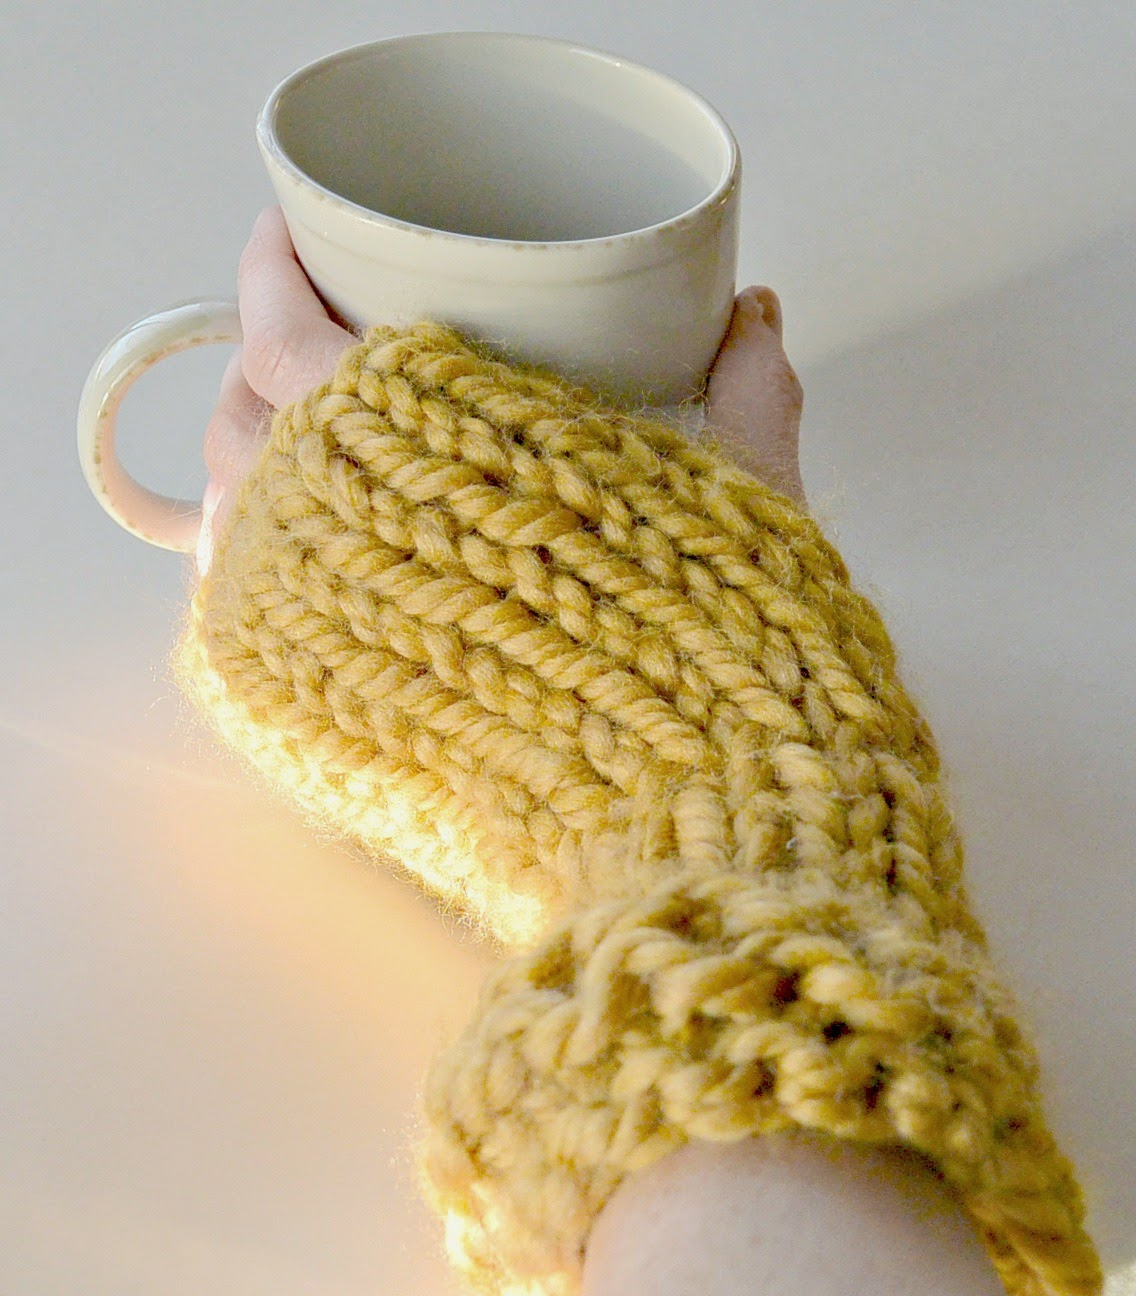 Free Knitting Patterns For Mittens In The Round : Knit Flat Fingerless Mittens - Straw Bed Fingerless Gloves   Mama In A Stitch